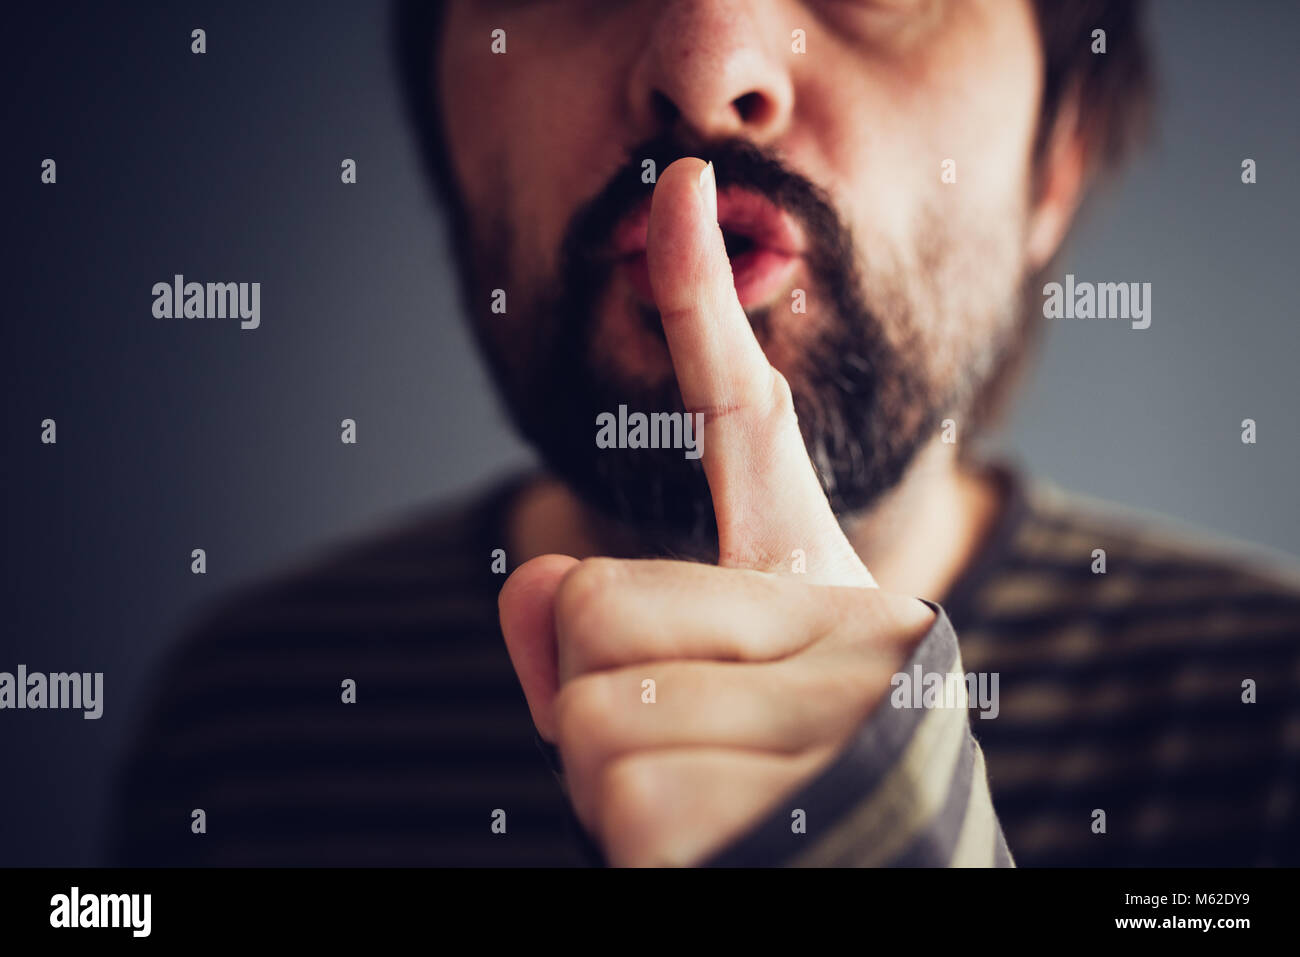 Man saying hush or be quiet with finger on lips, close up with selective focus - Stock Image